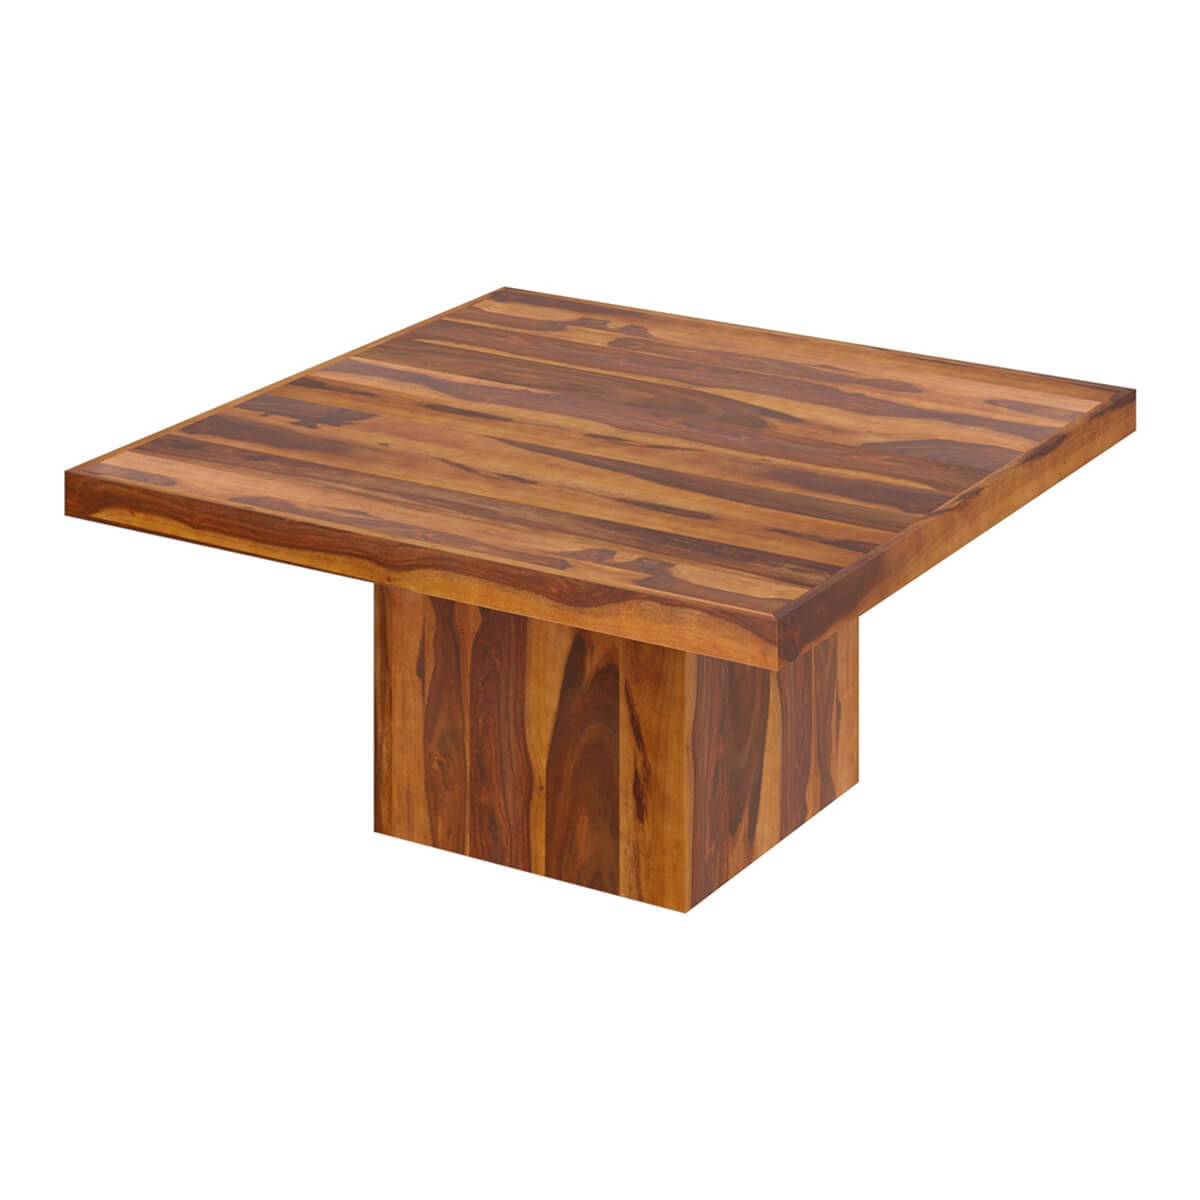 Solid wood modern rustic block pedestal square dining for Square dining table for 8